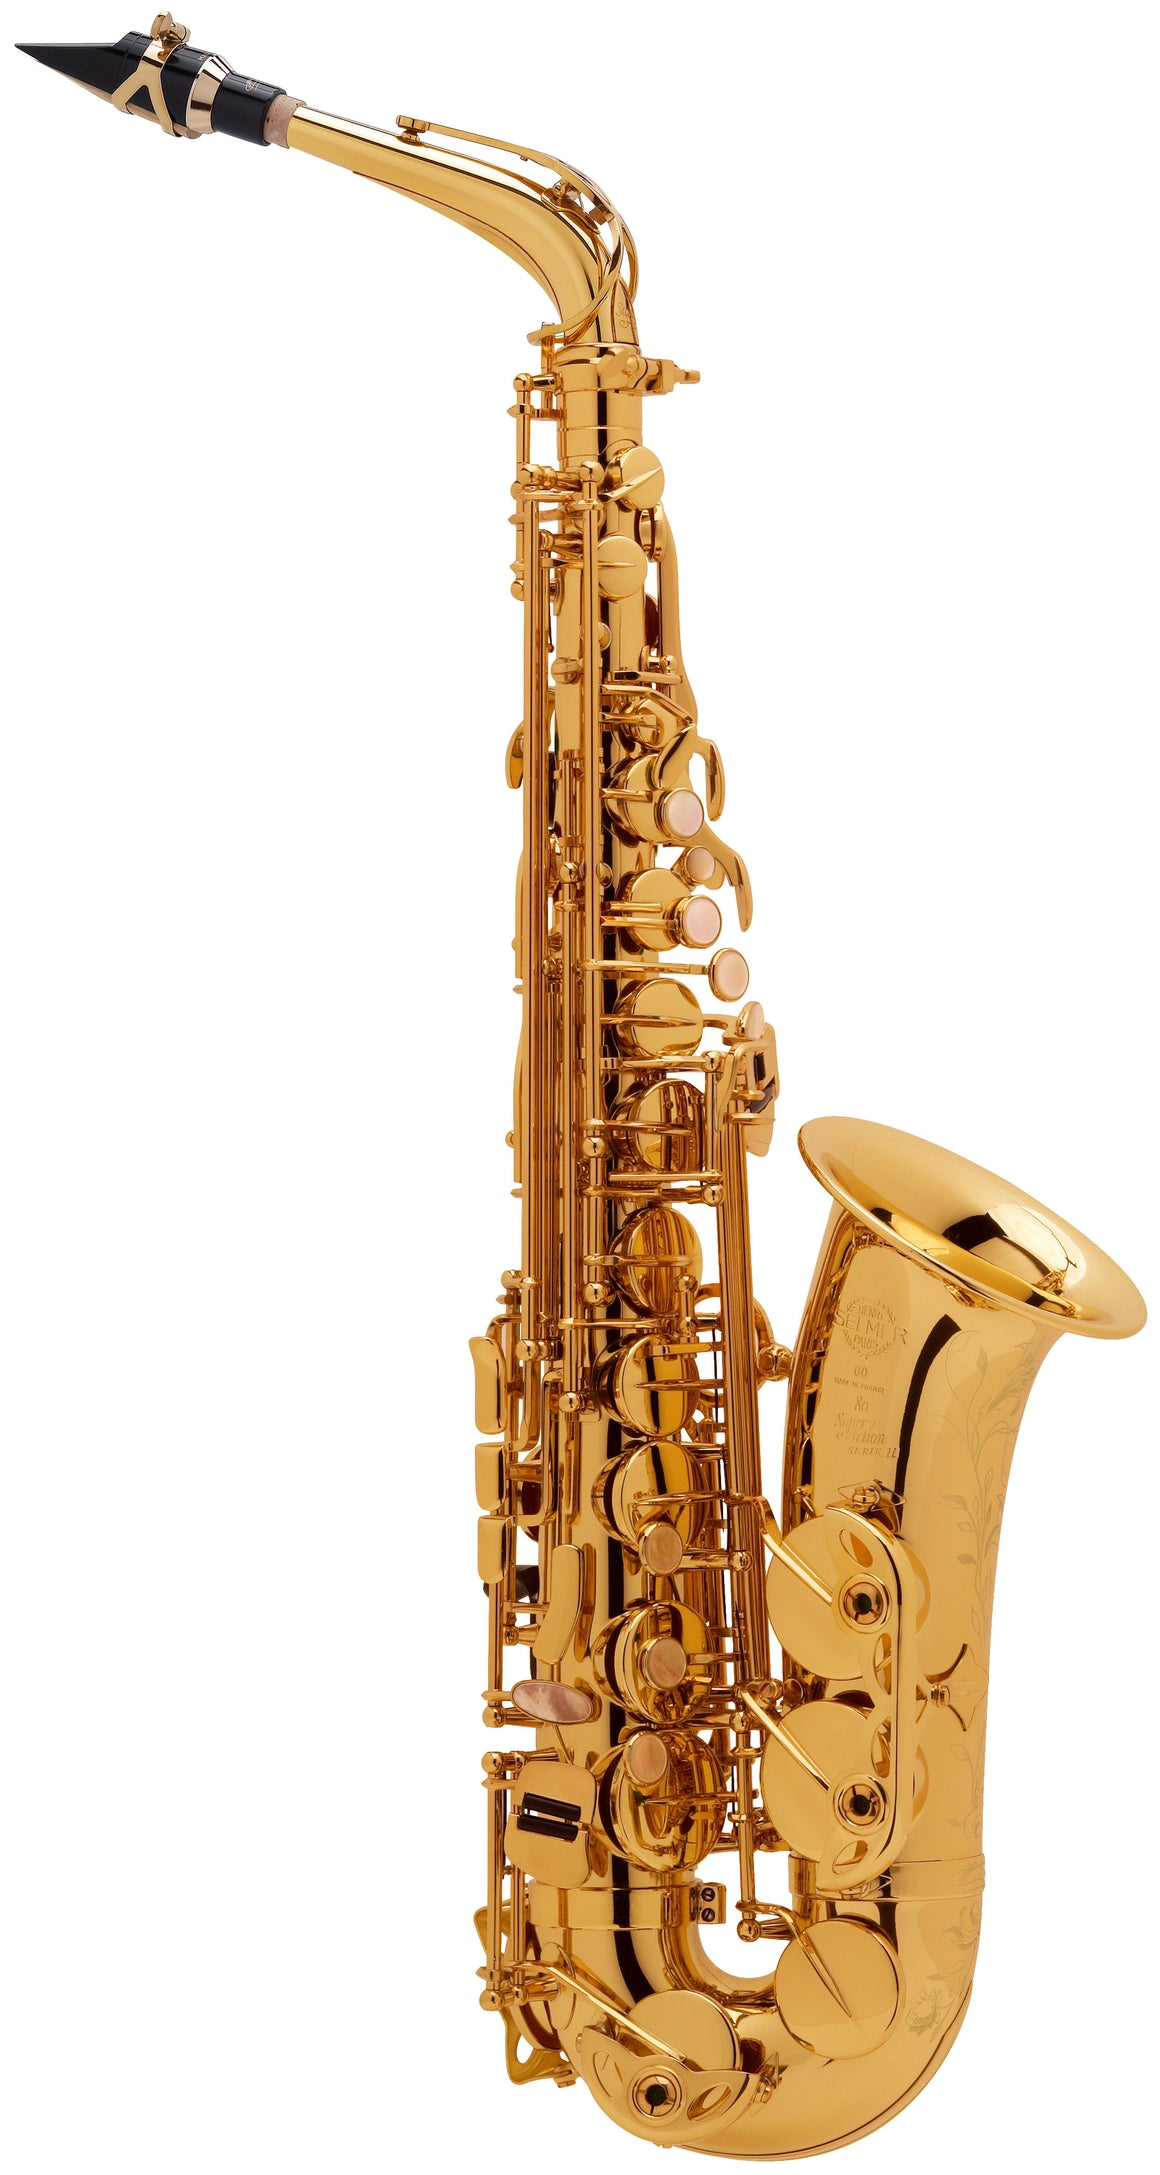 Selmer Paris Alto Saxophone - 52JGP - Gold Plated